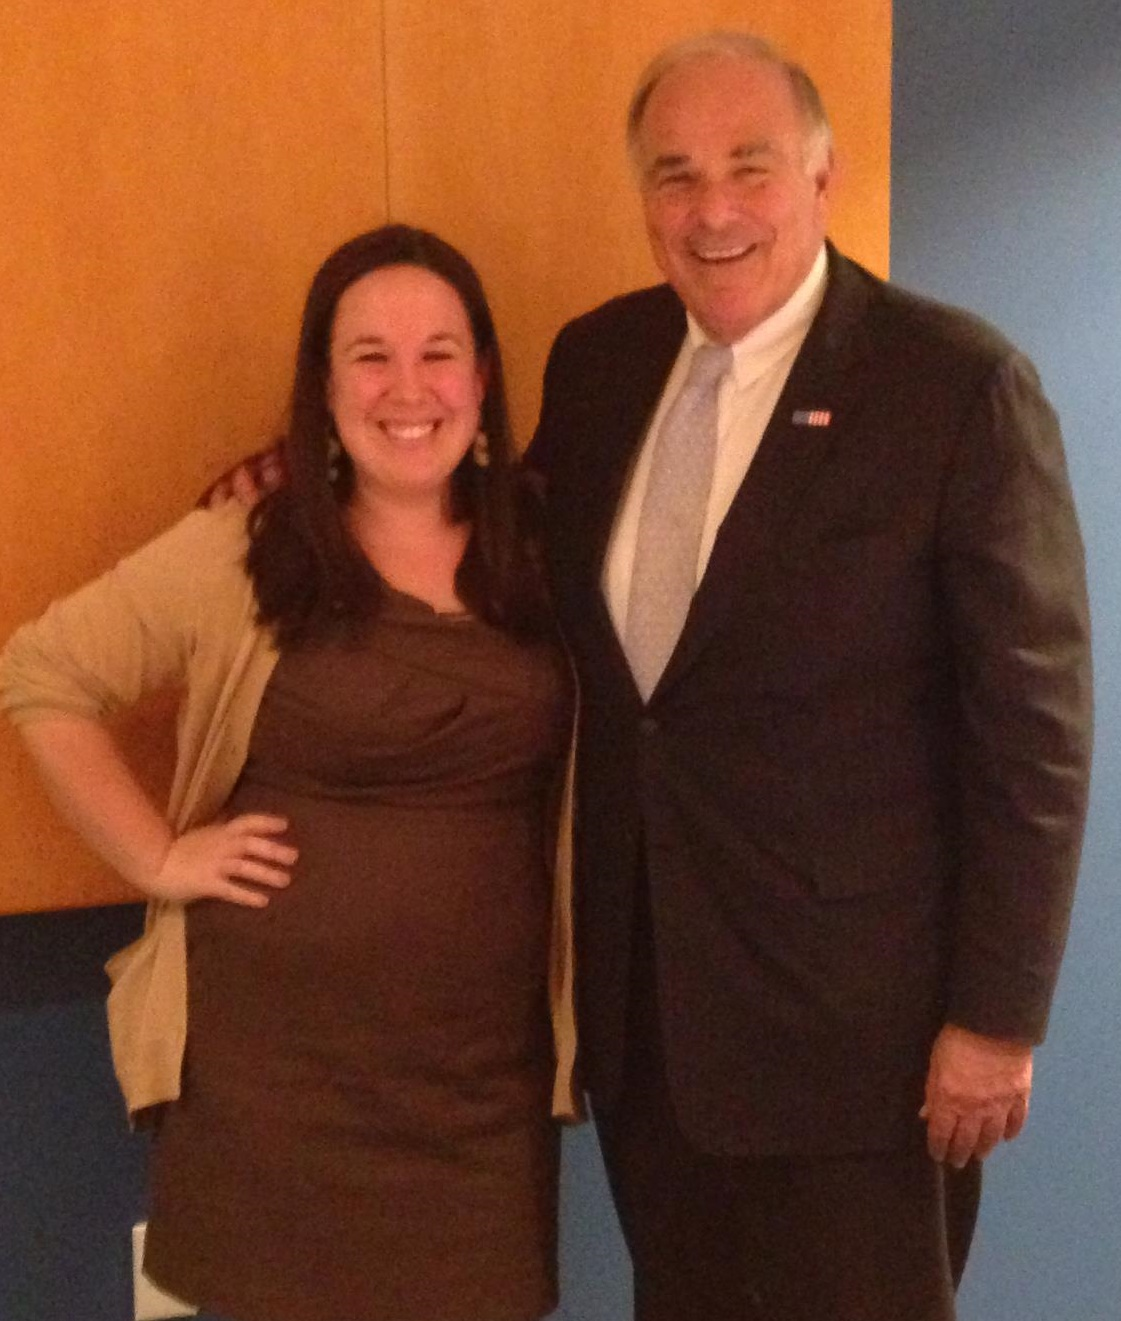 Gov. Ed Rendell was a client through Building America's Future